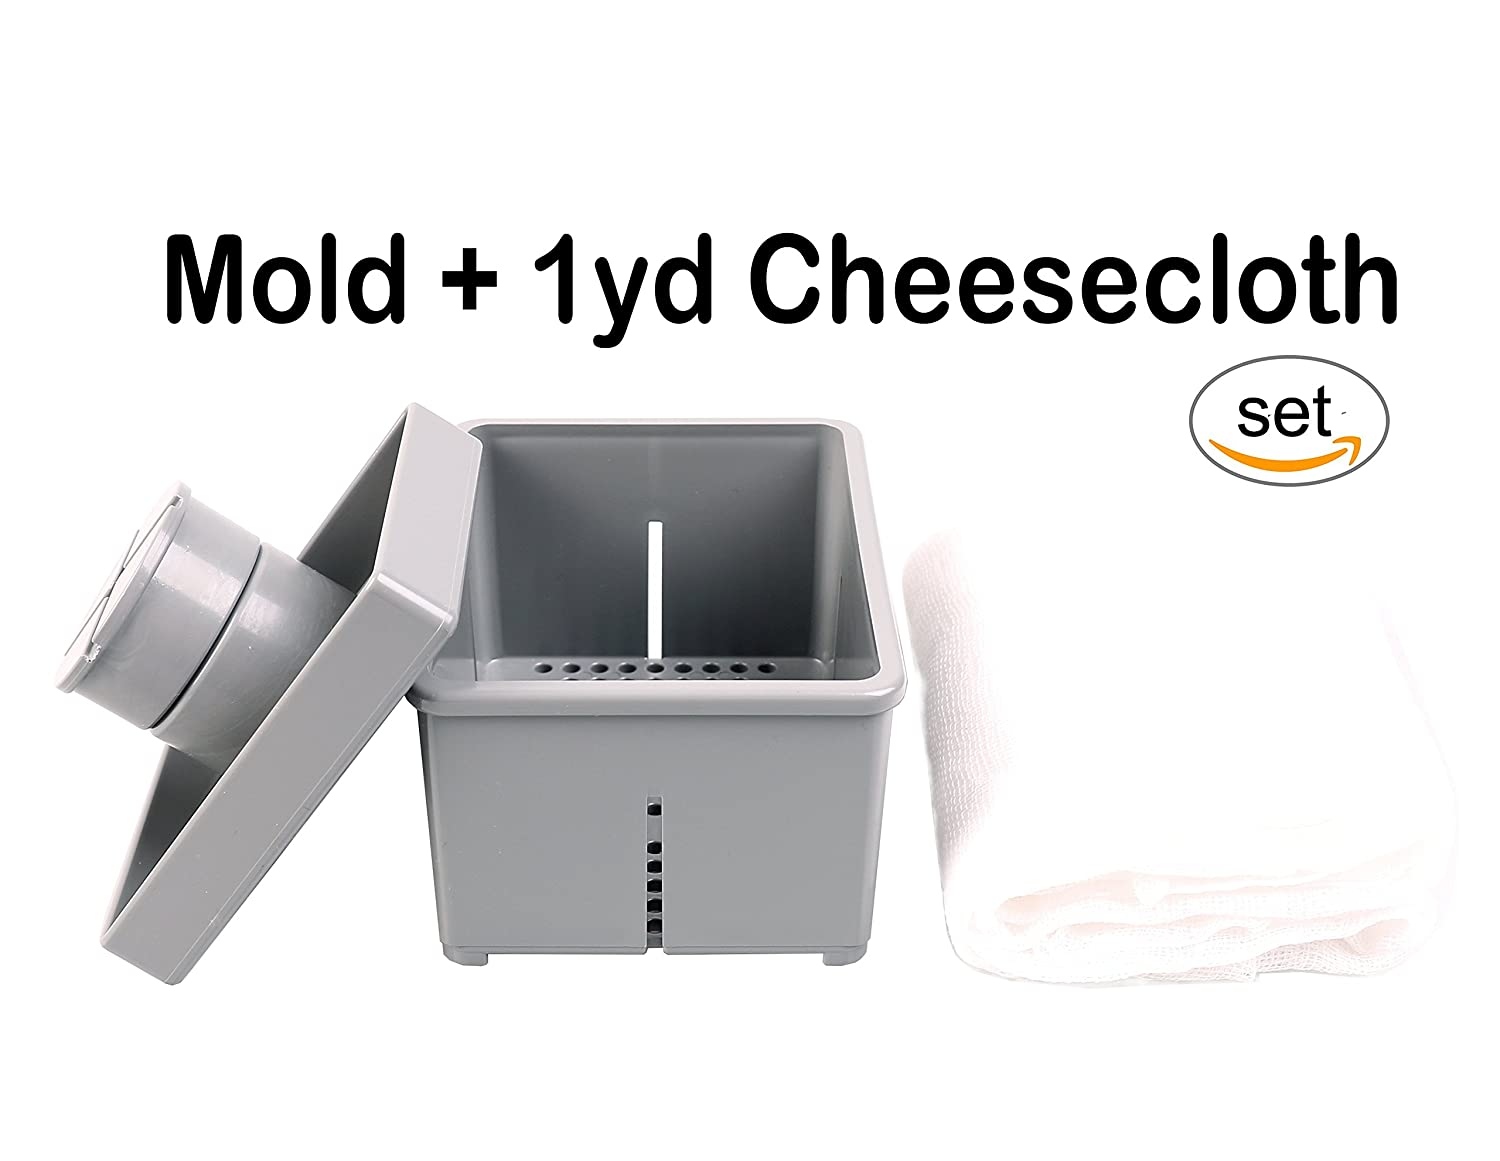 Tofu & Cheese Maker Press Mold with 1 yard unbleached 100% Cotton Cheesecloth SoySo